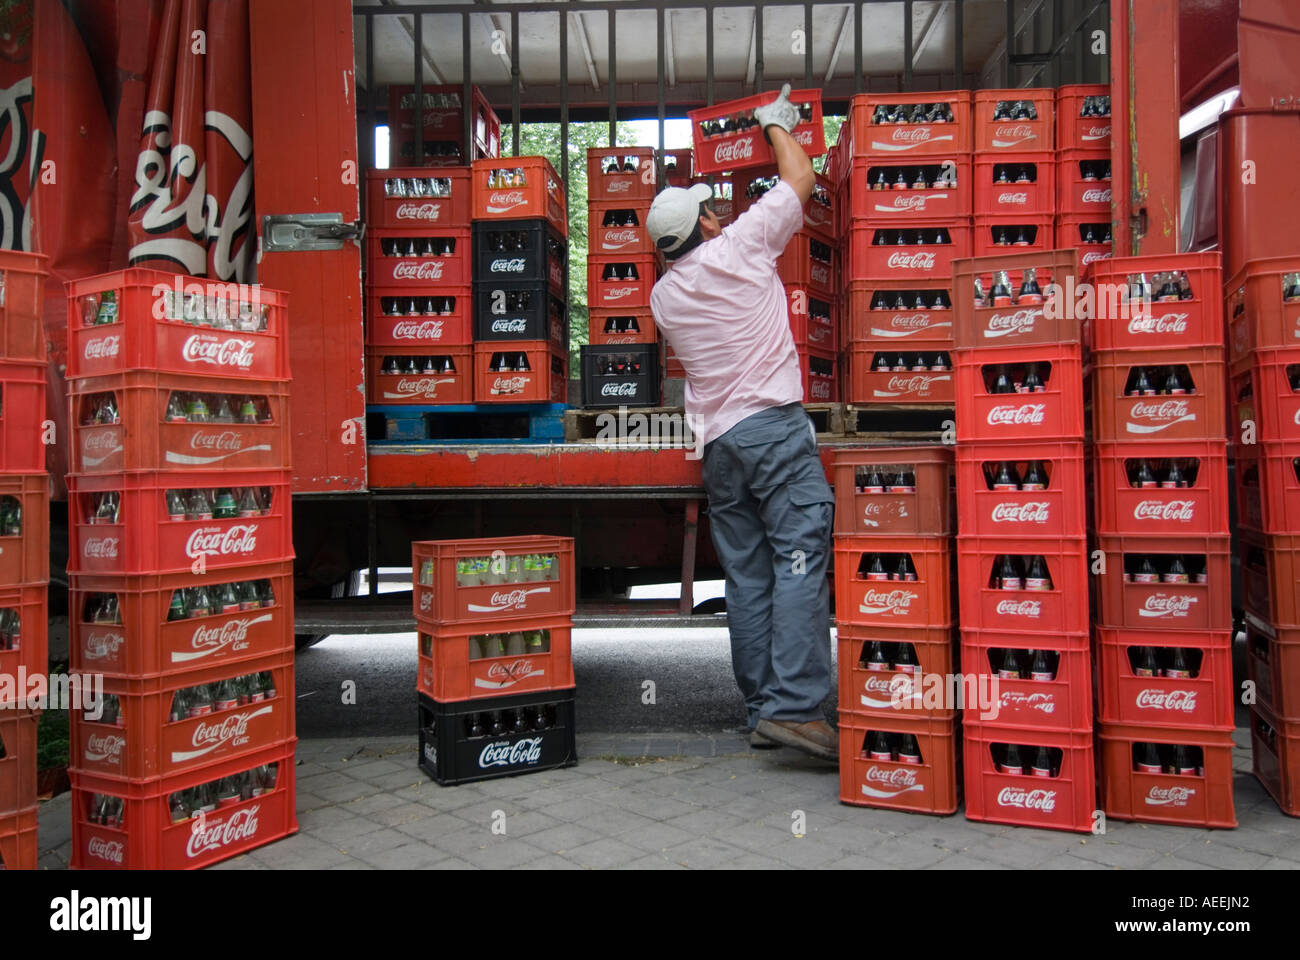 Coca Cola delivery man unloading crates from lorry, Madrid Spain - Stock Image